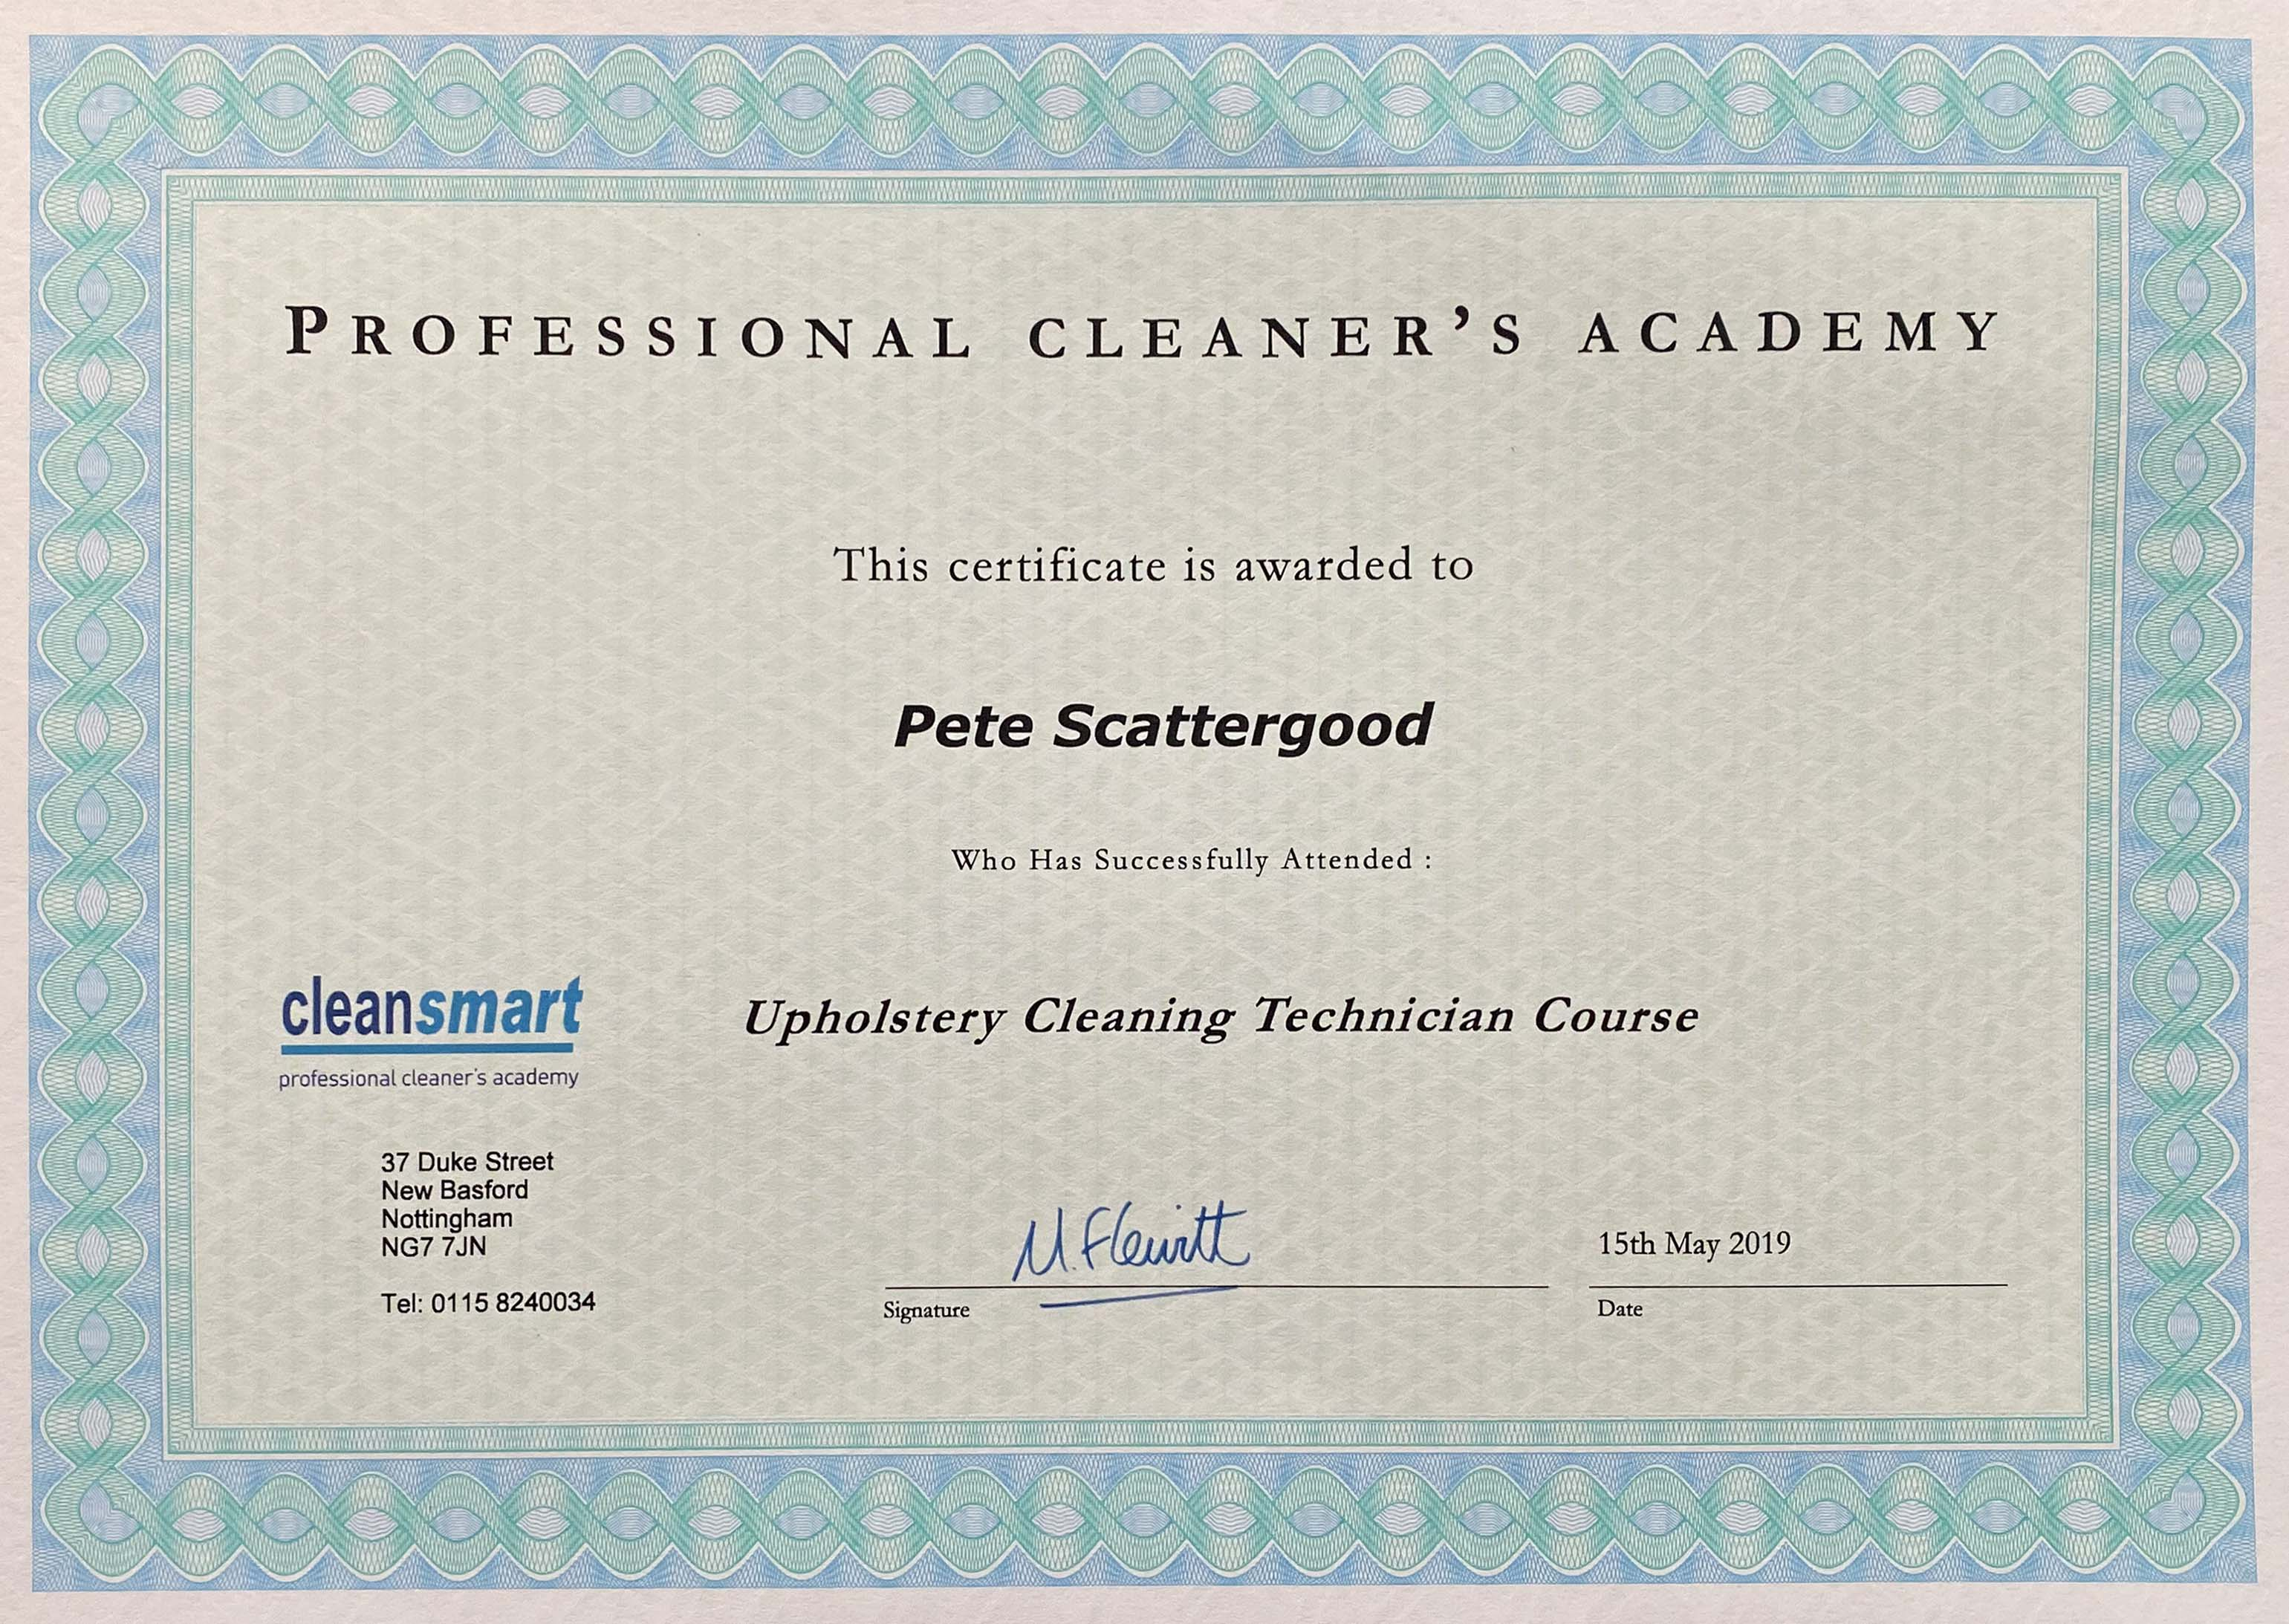 Clean smart accreditation certificate for Pete Scattergood